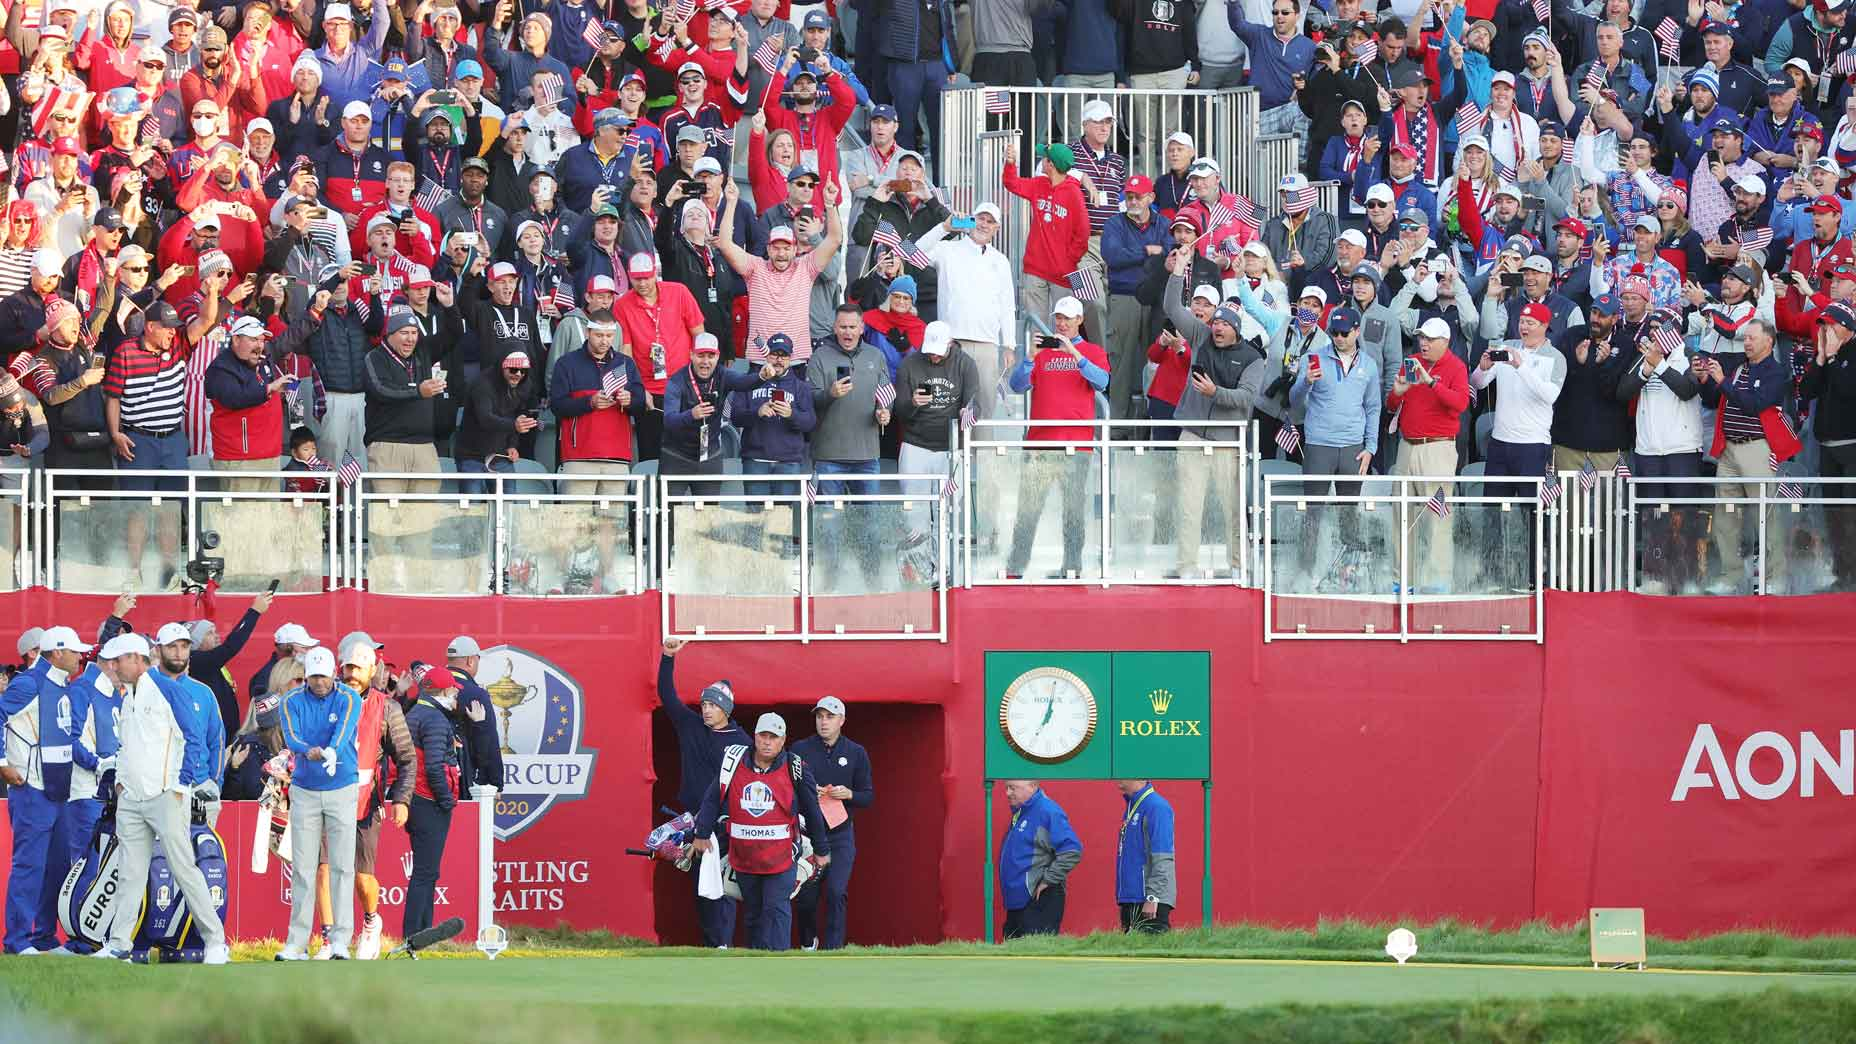 2021 Ryder Cup 1st tee